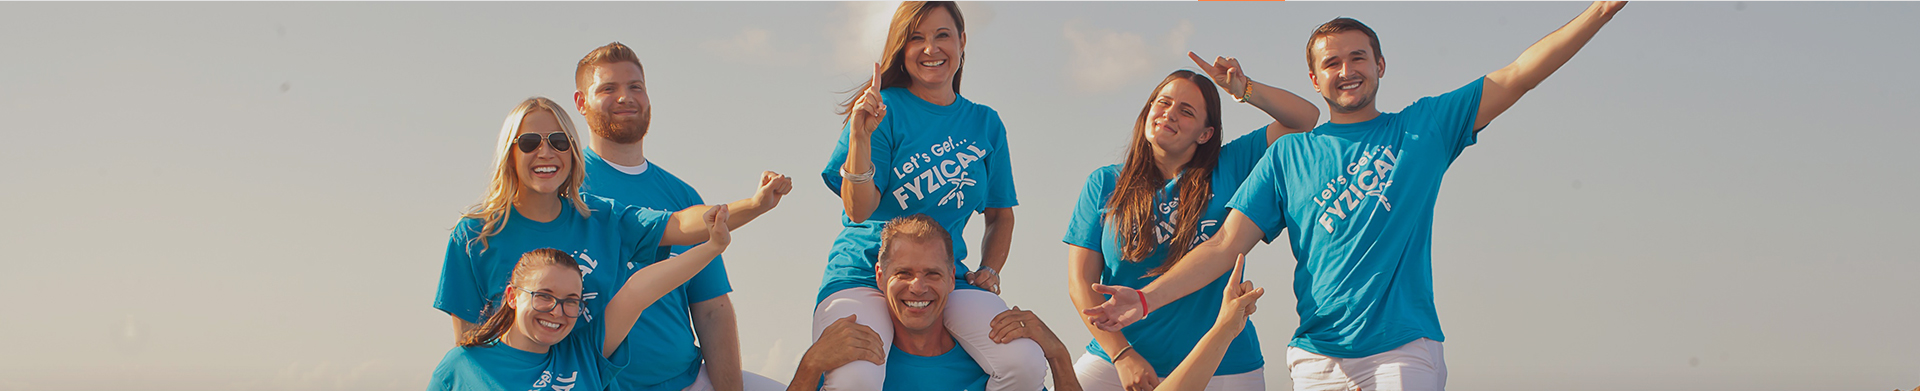 physical therapists takes group photo at the beach